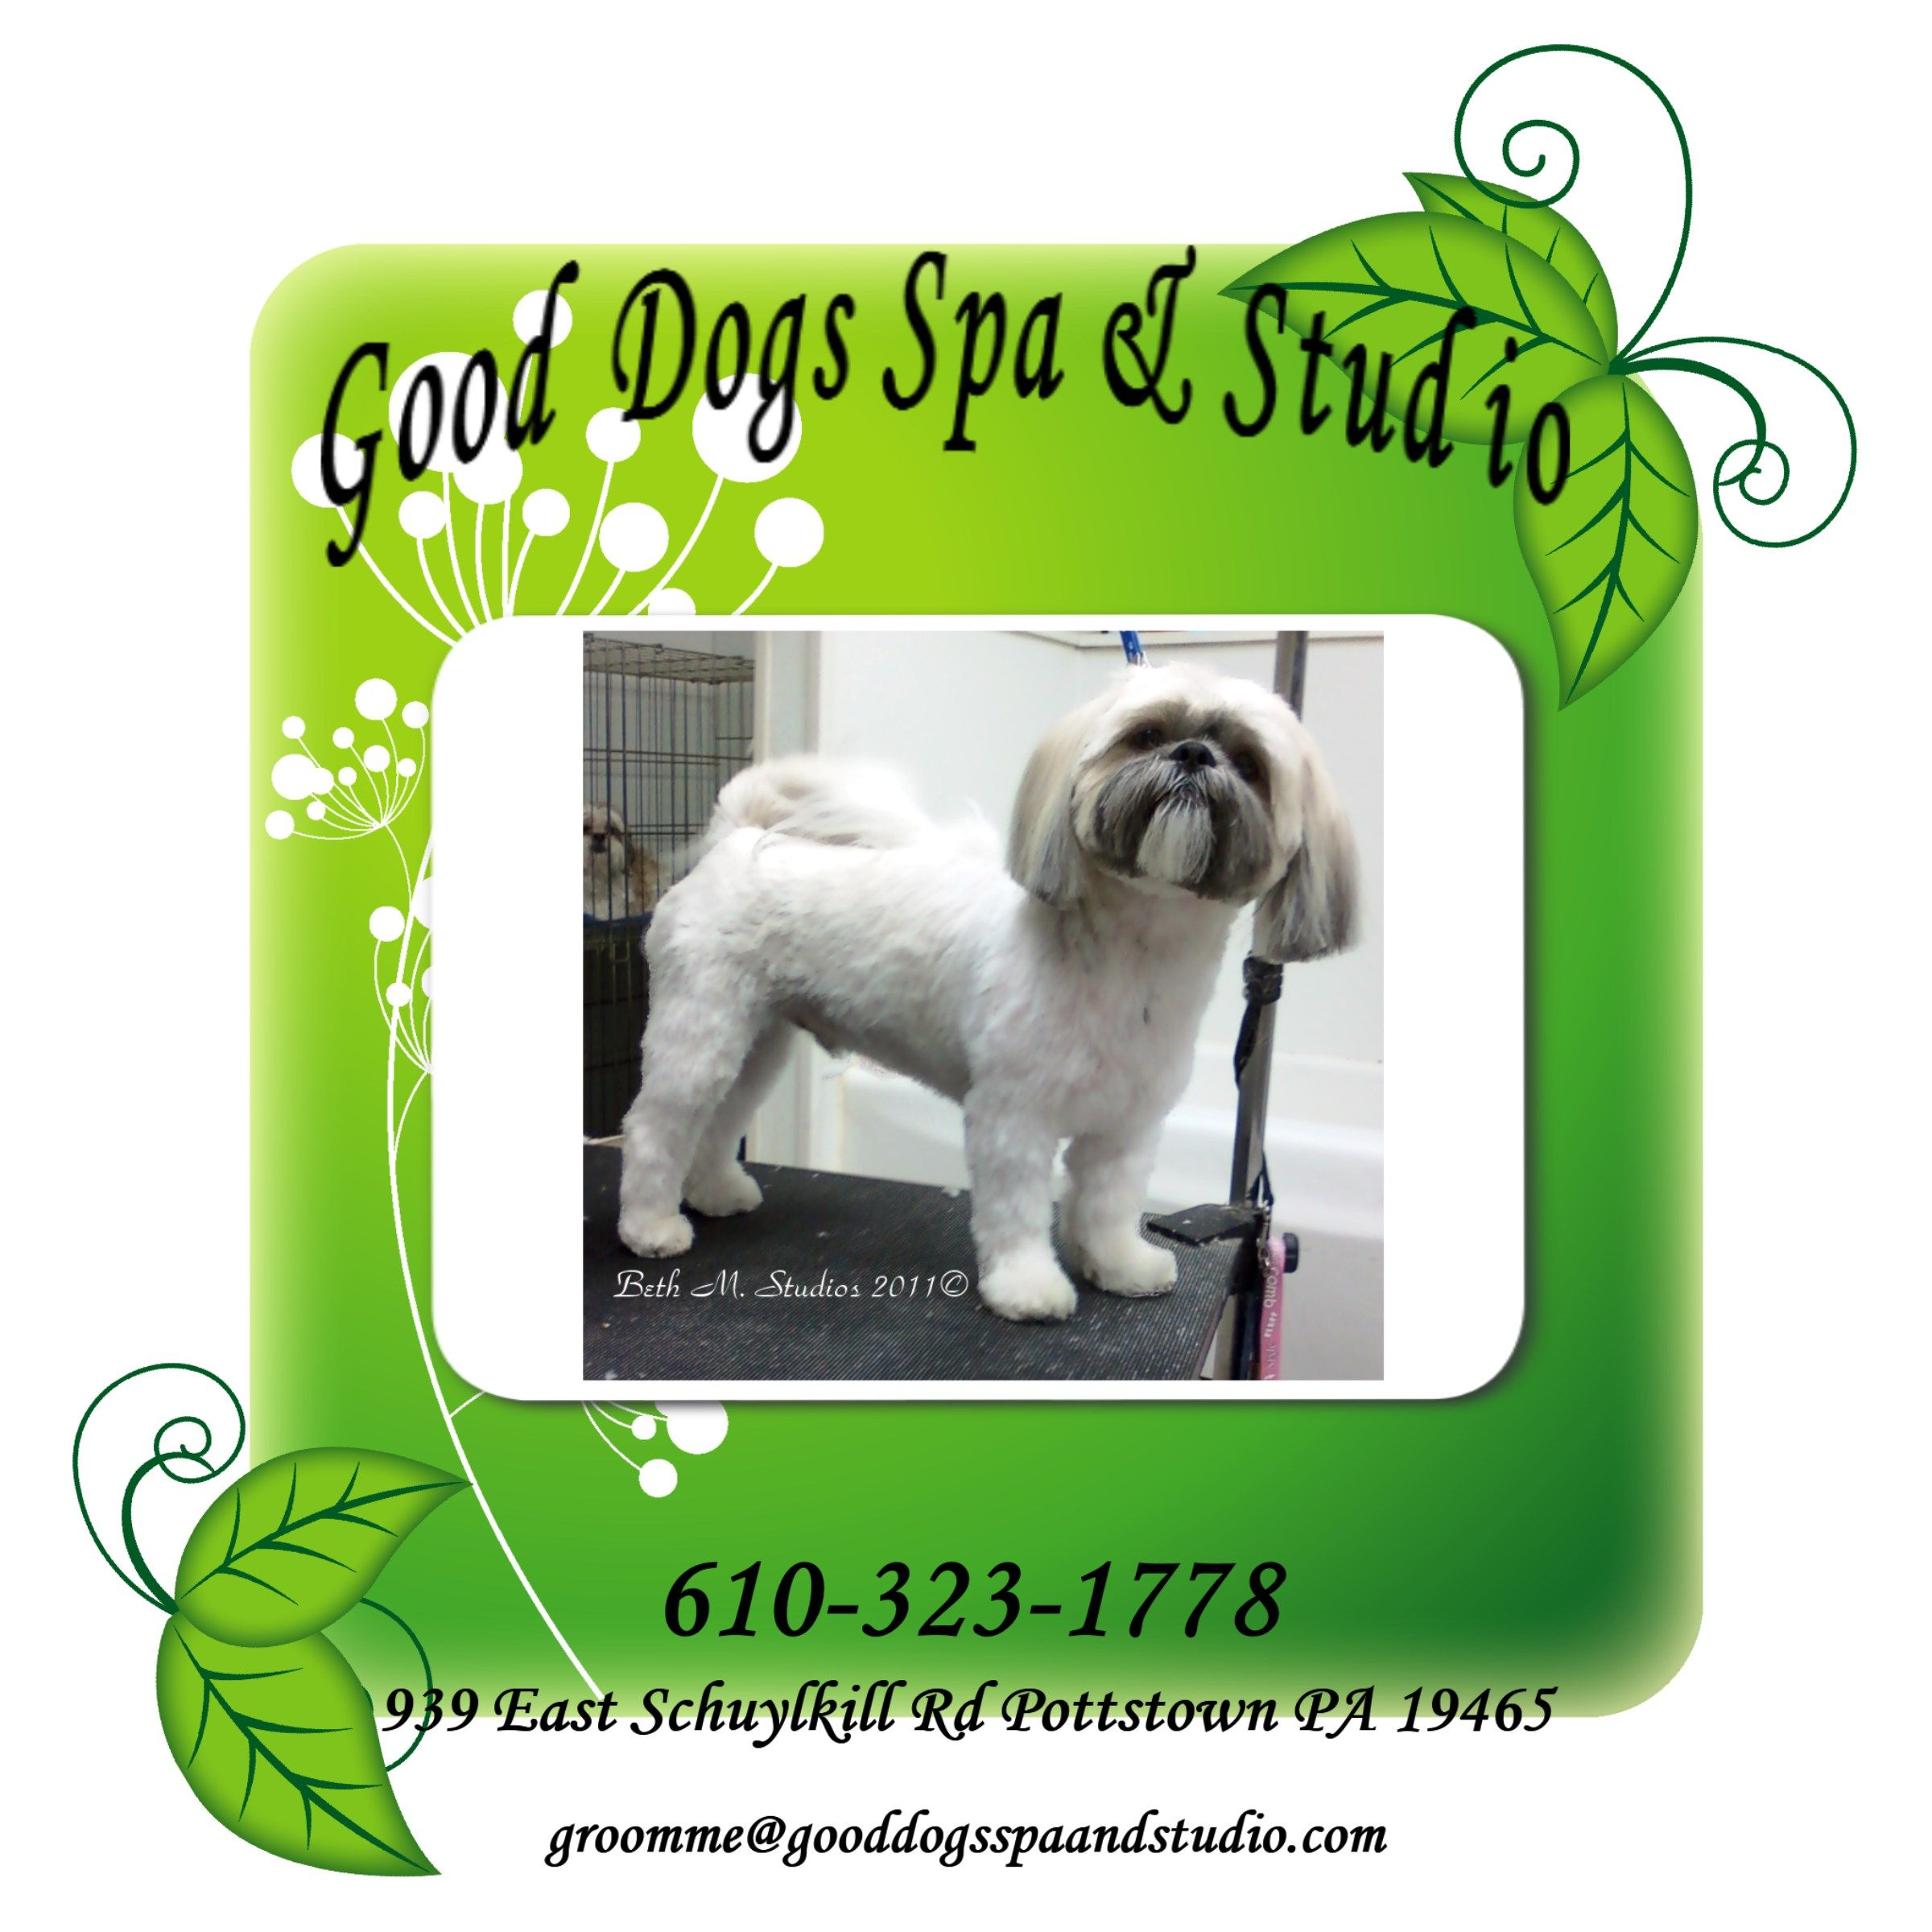 Alex Long Pet Style Gooddogsspaandstudio Lhasaapso Doggrooming Pottstown Dog Spa Pet Style Dog Grooming